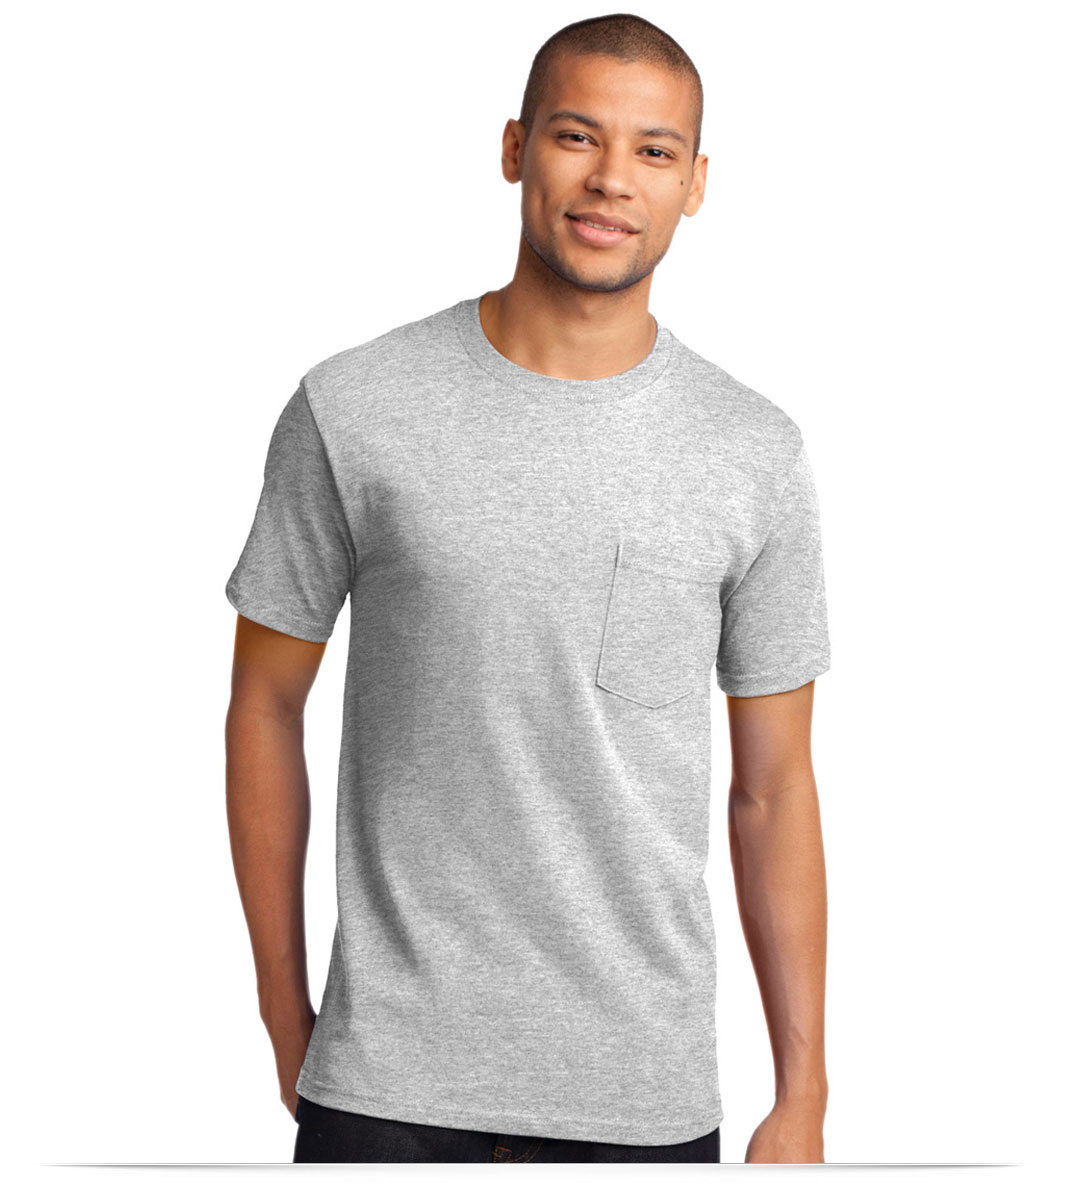 Men's Cotton Pocket T-Shirt with Embroidered Logo